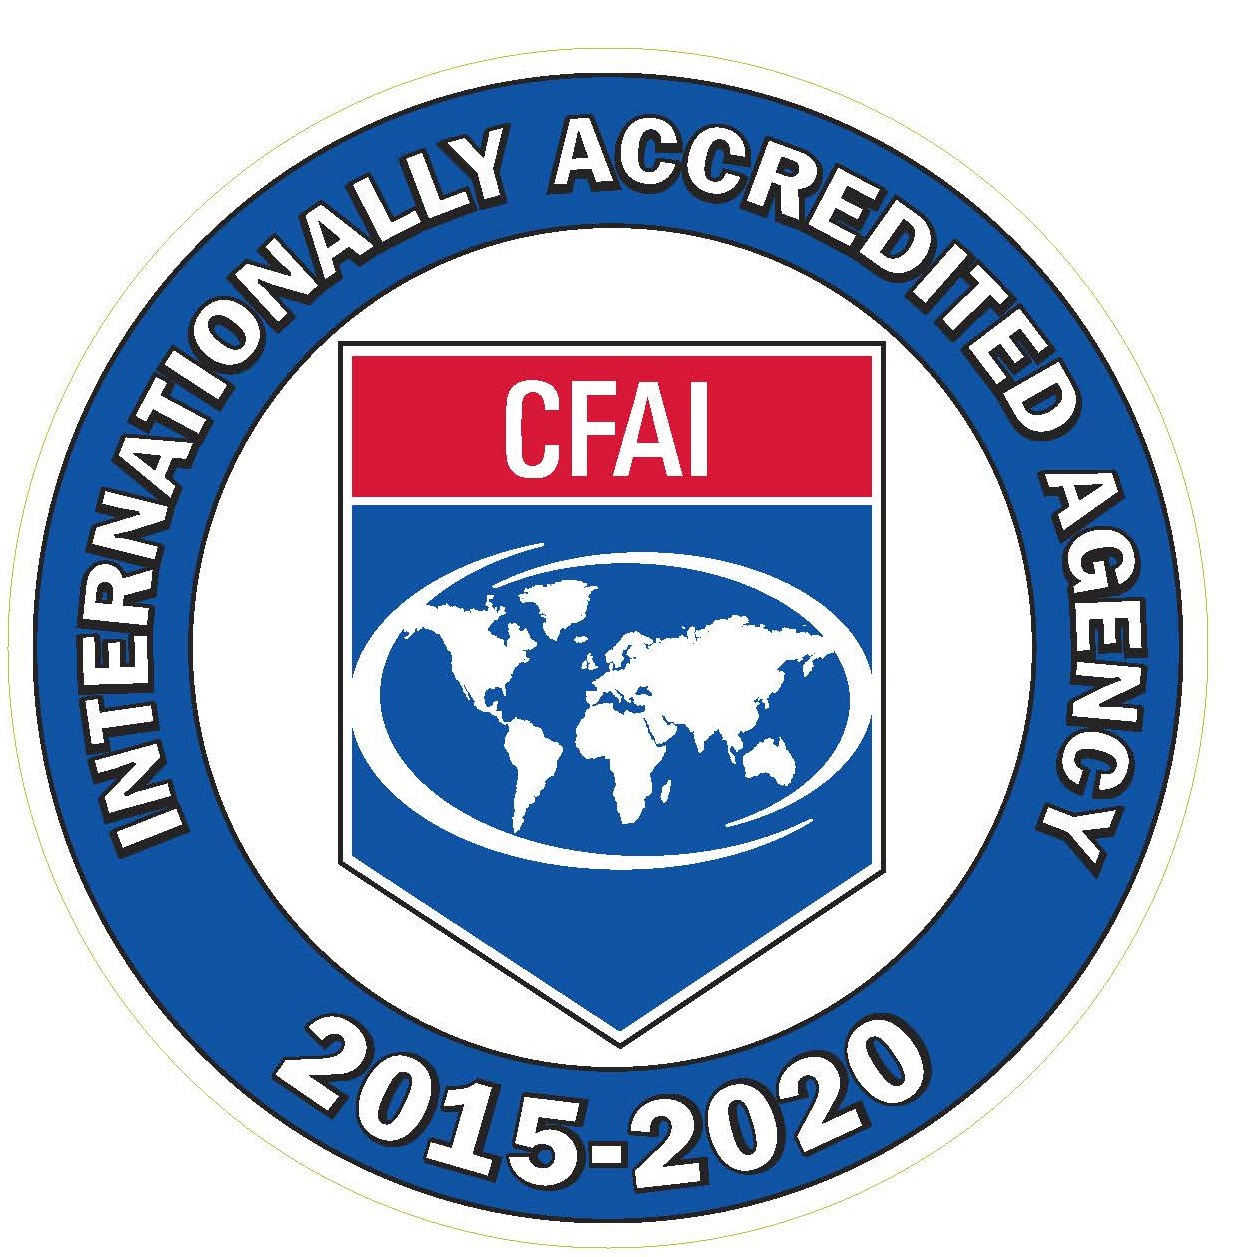 Internationally Accredited Agency 2015 to 2020